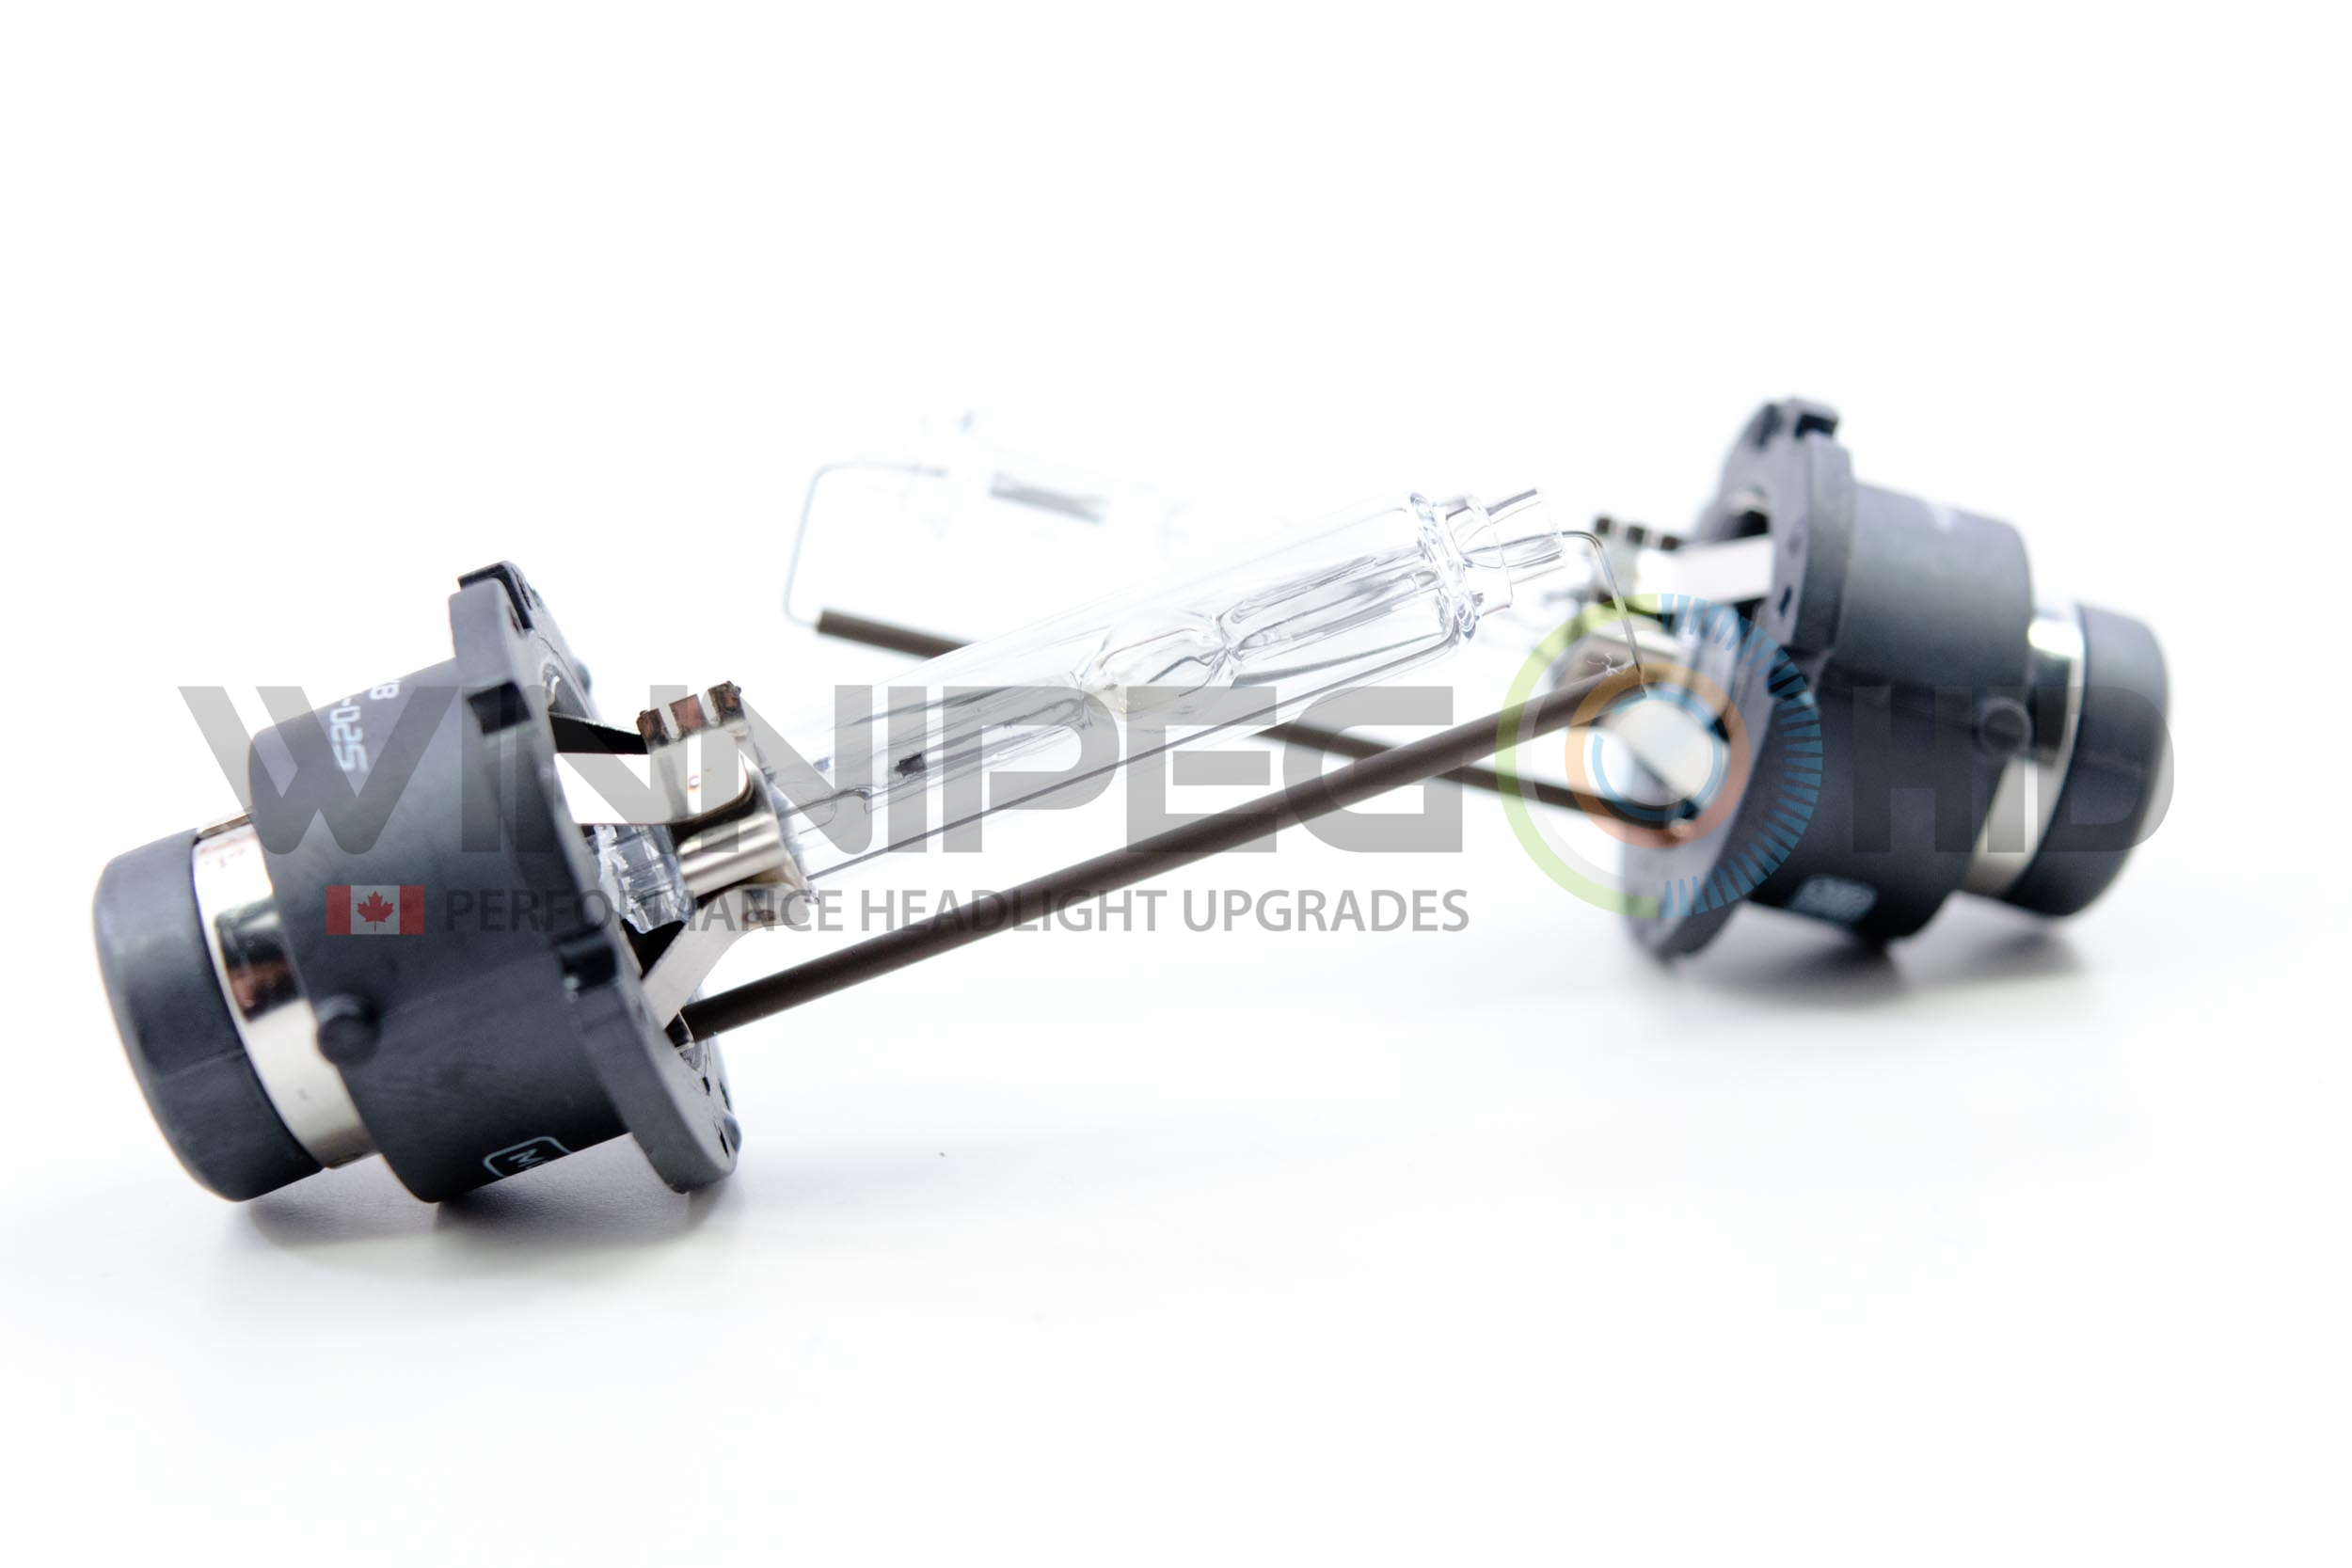 2013 Hyundai Genesis Wiring Harness Diagram Guide And For Hid Projectors Connectors Accessories Wheels